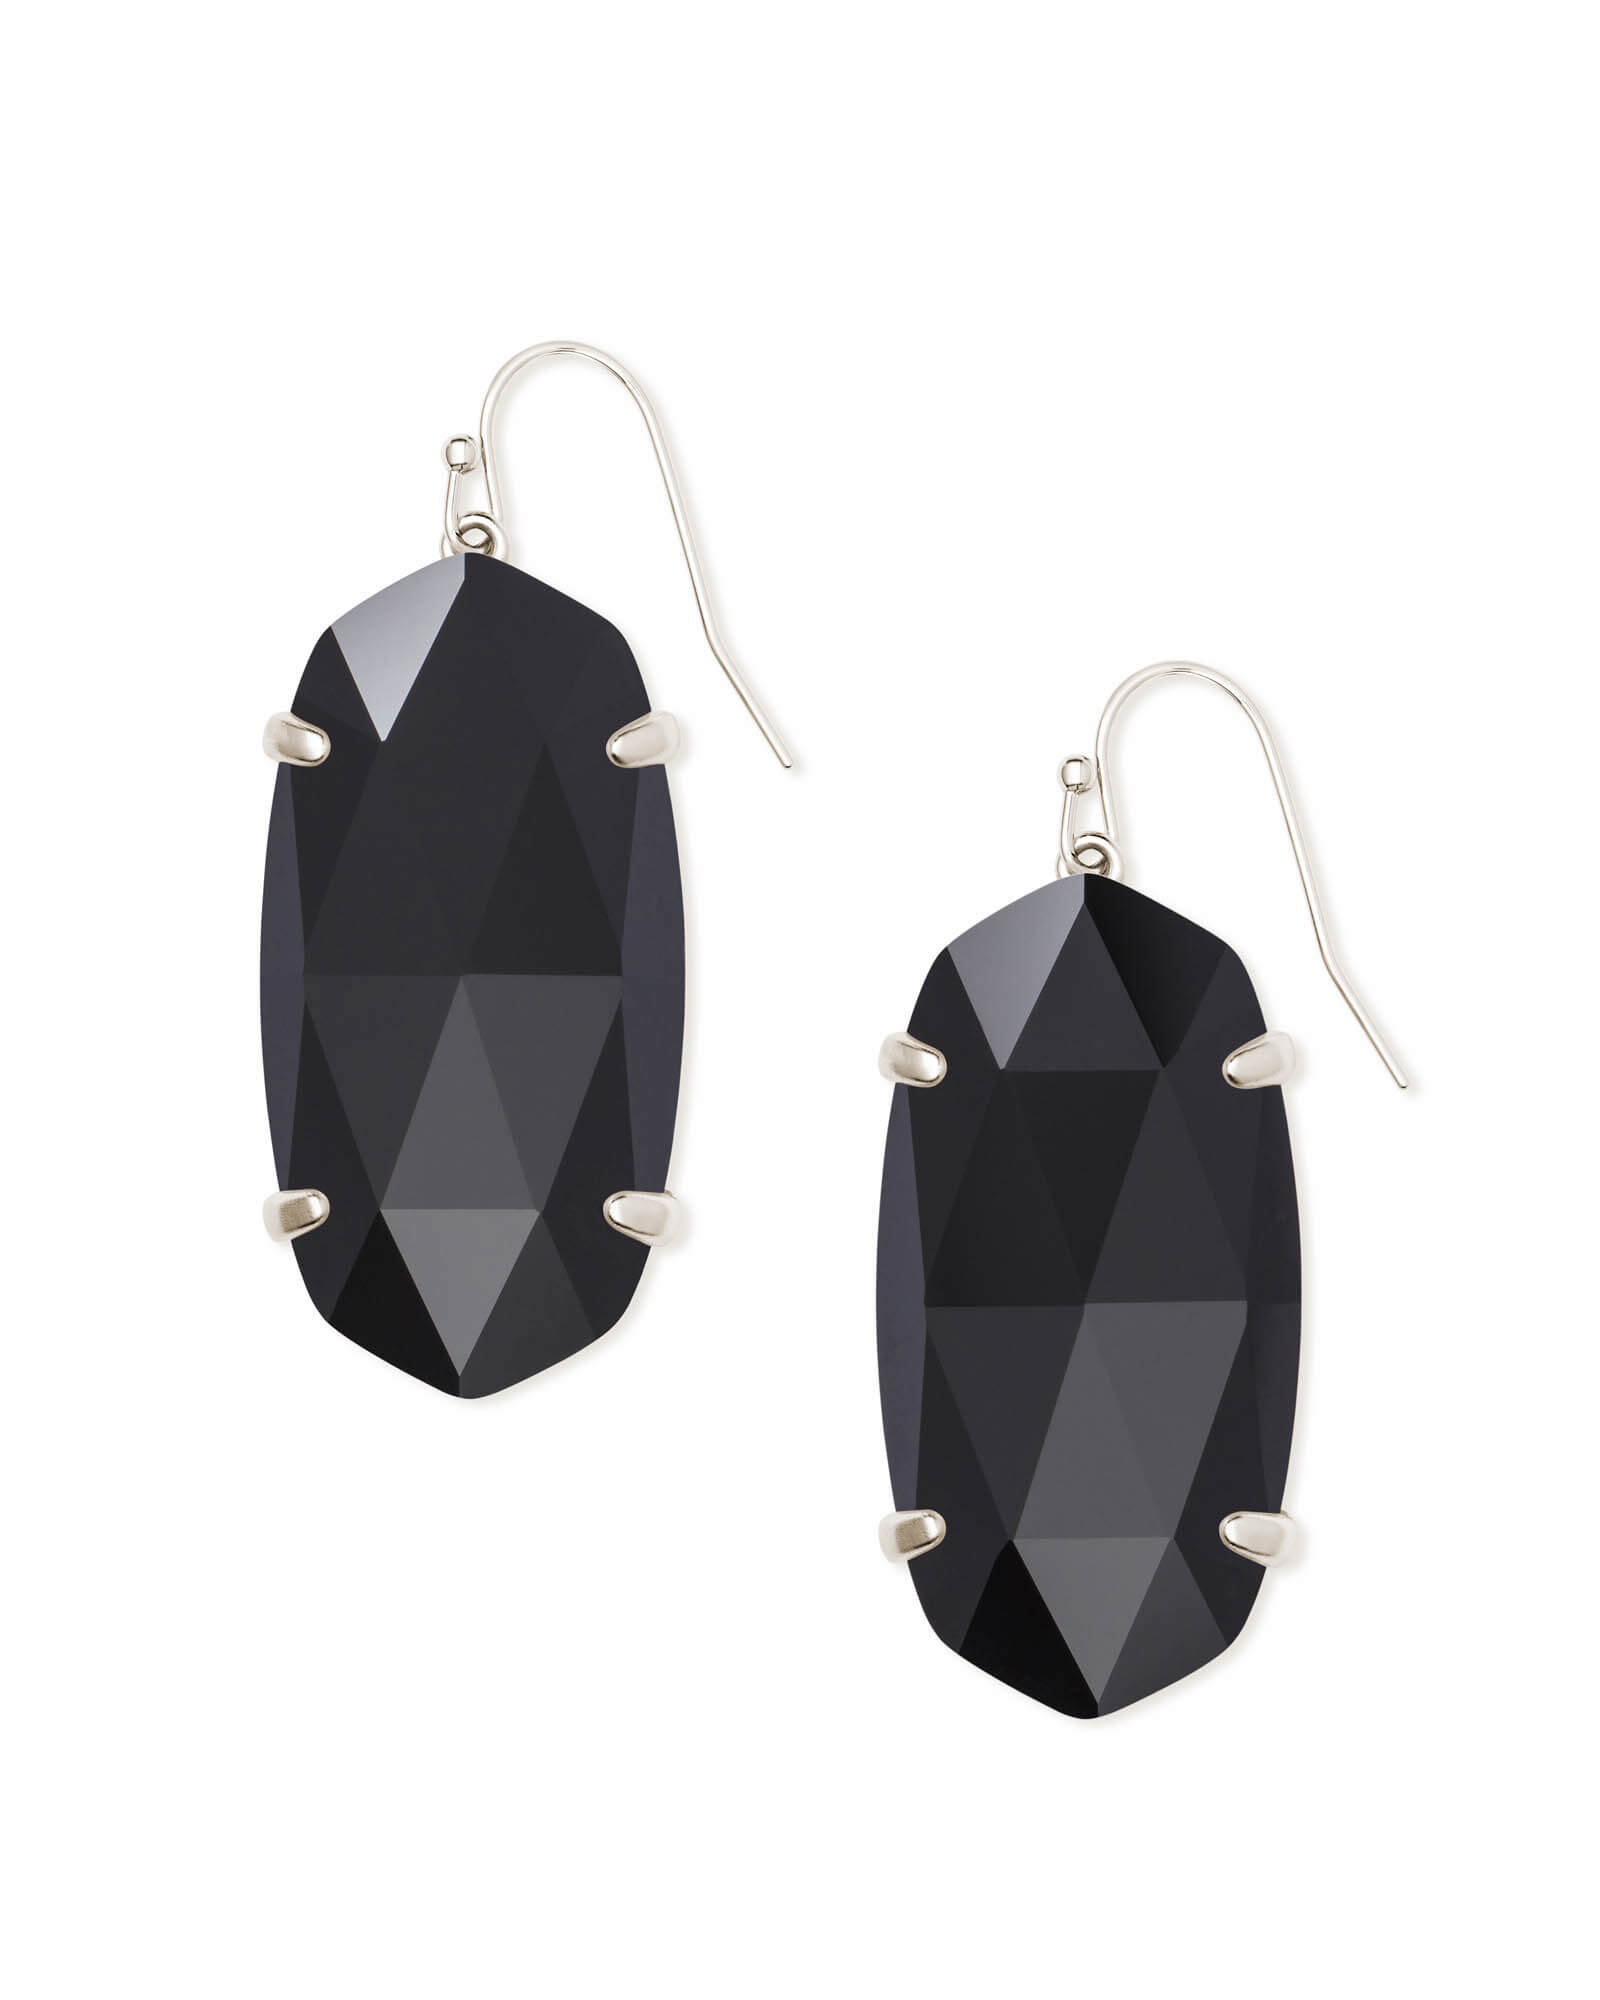 Esme Silver Drop Earrings In Black Opaque Glass